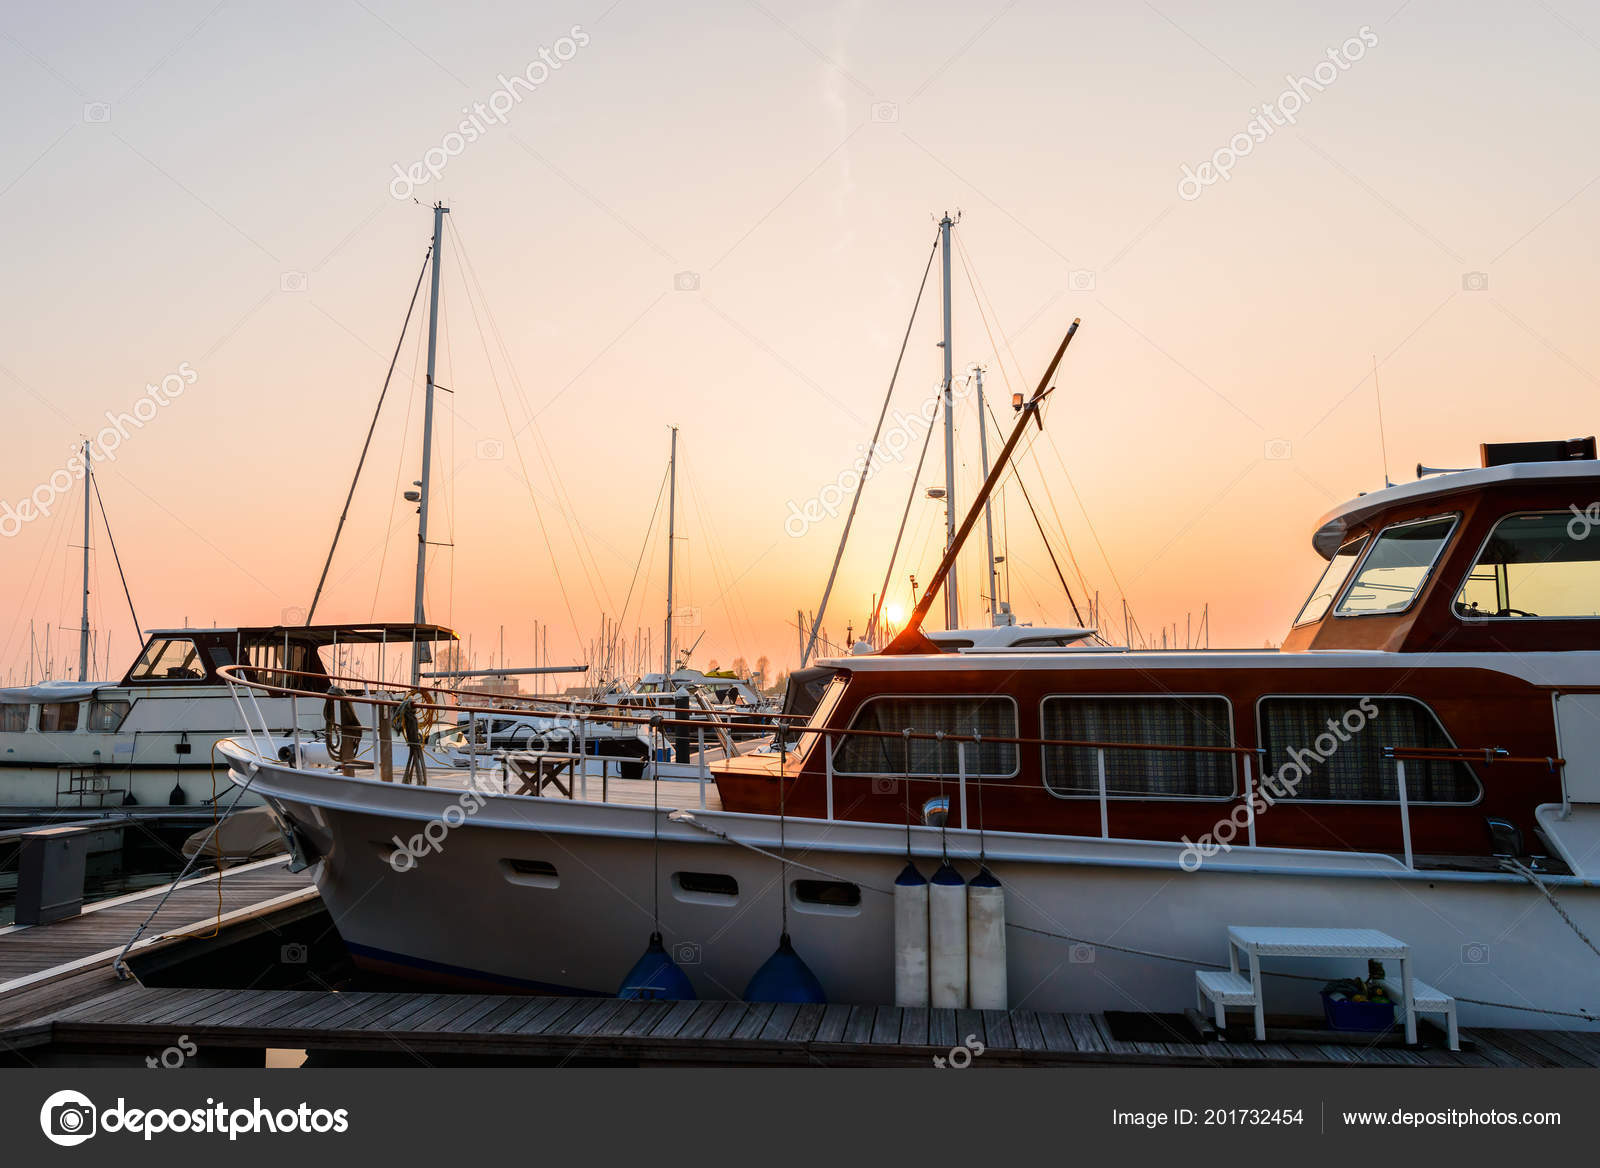 Modern sailboats and luxury yachts parked in the seaport at